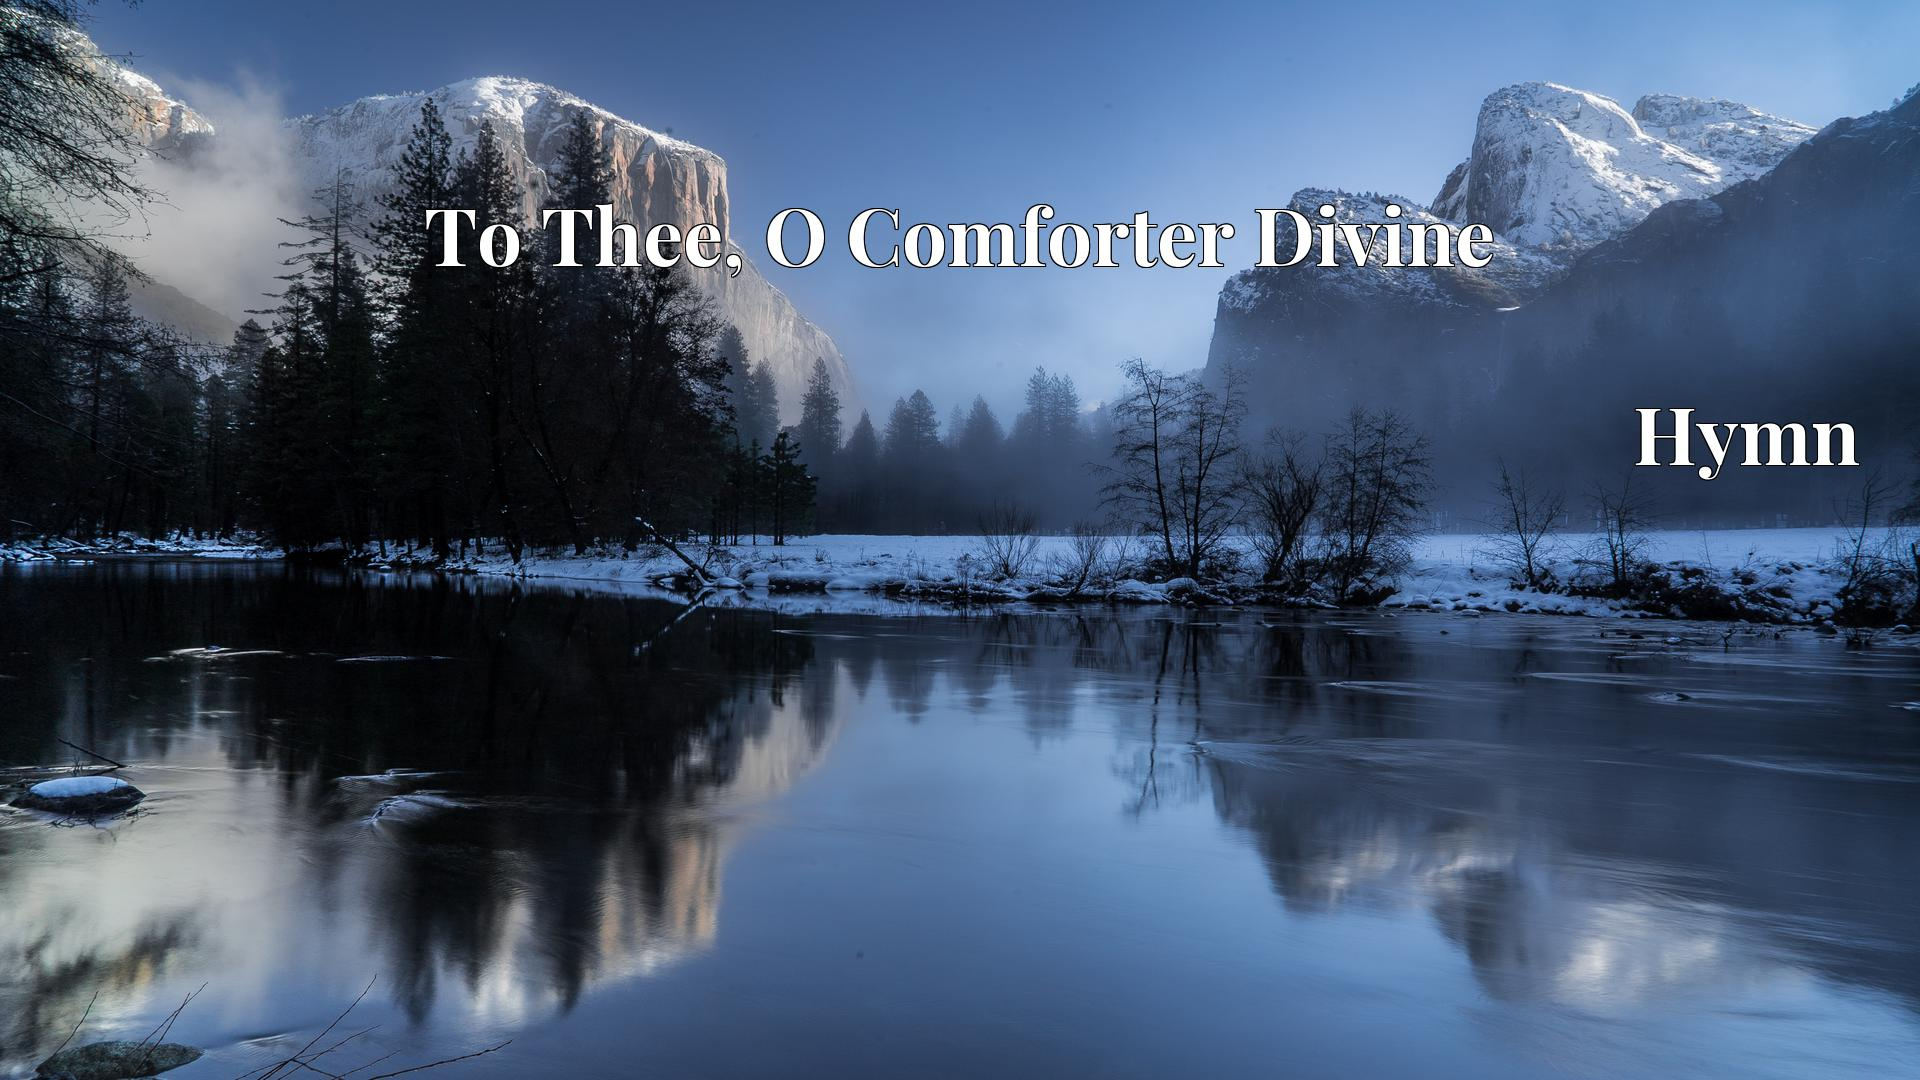 To Thee, O Comforter Divine - Hymn